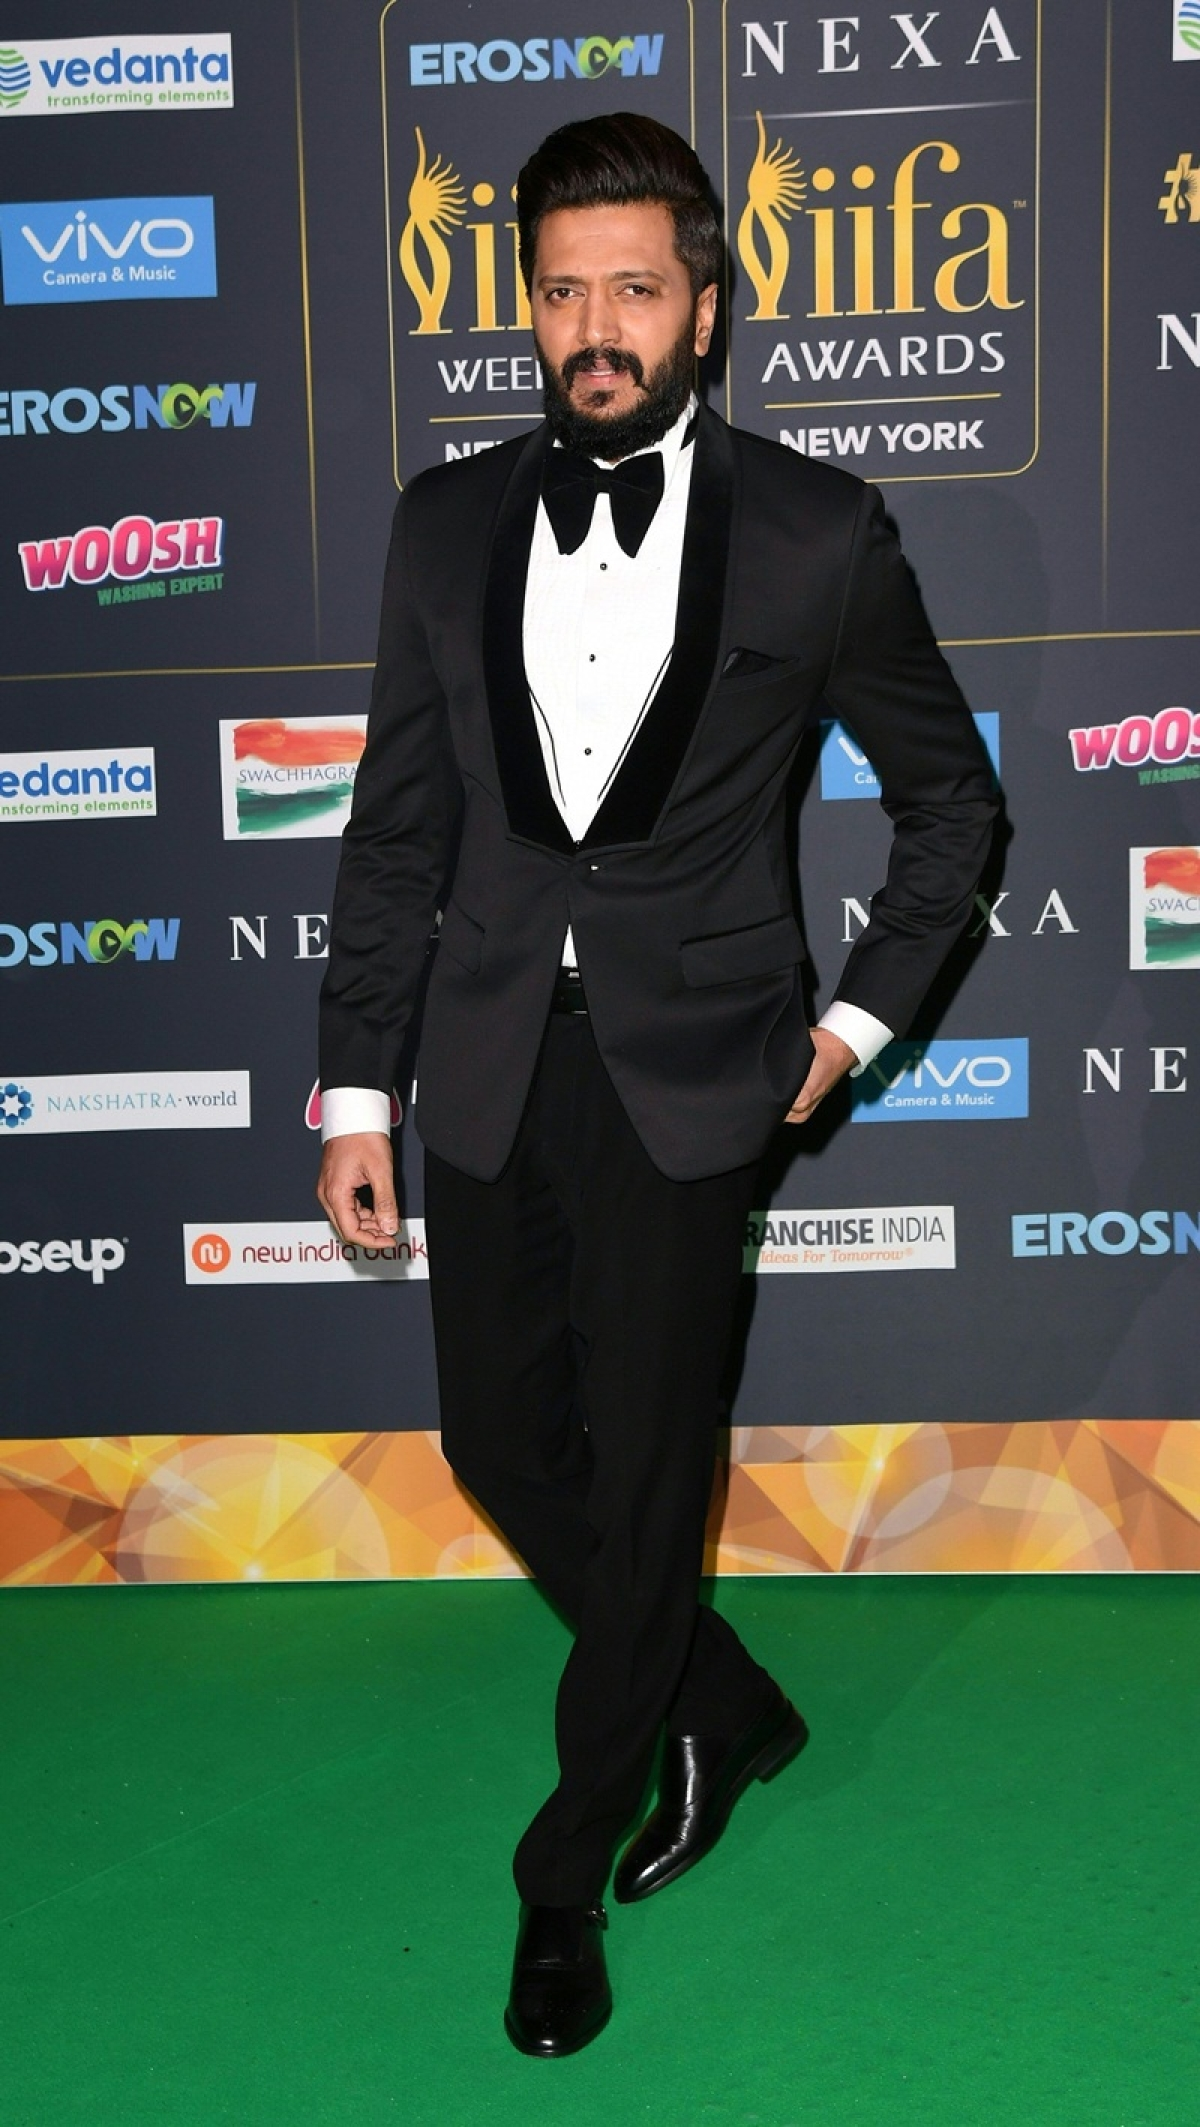 Bollywood Actor Ritesh Deshmukh arrives for the IIFA Awards July 15, 2017 at the MetLife Stadium in East Rutherford, New Jersey during the 18th International Indian Film Academy (IIFA) Festival. / AFP PHOTO / ANGELA WEISS